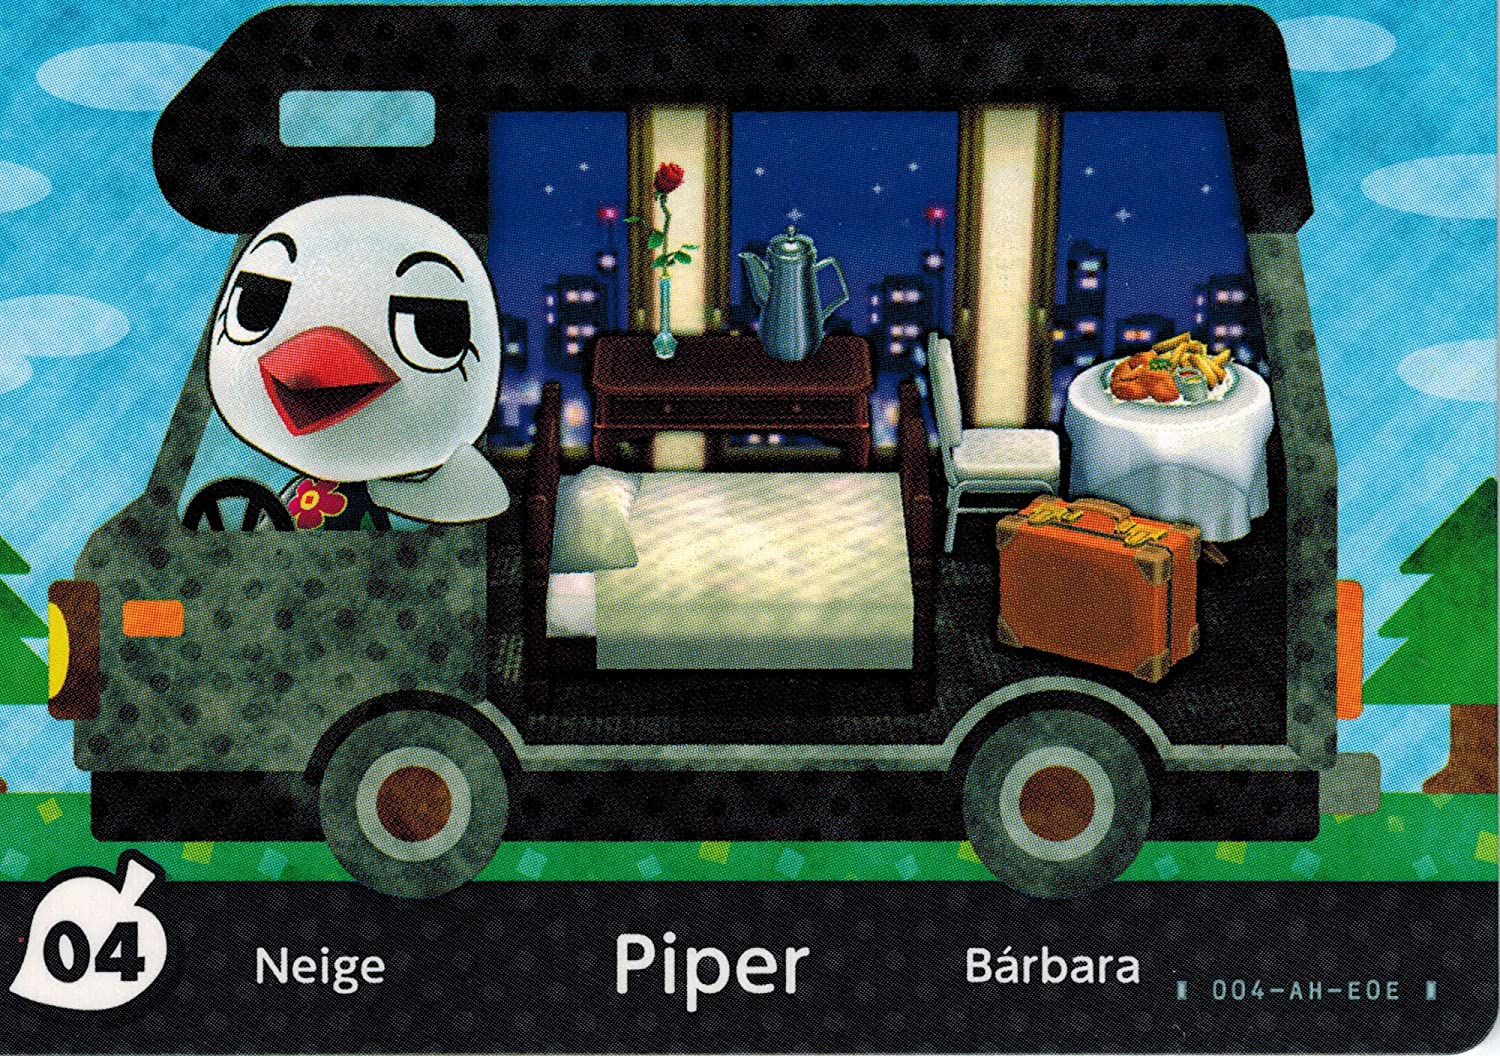 Nintendo New Leaf Animal Crossing Welcome 04 All stores Albuquerque Mall are sold 5 Amiibo Piper Card